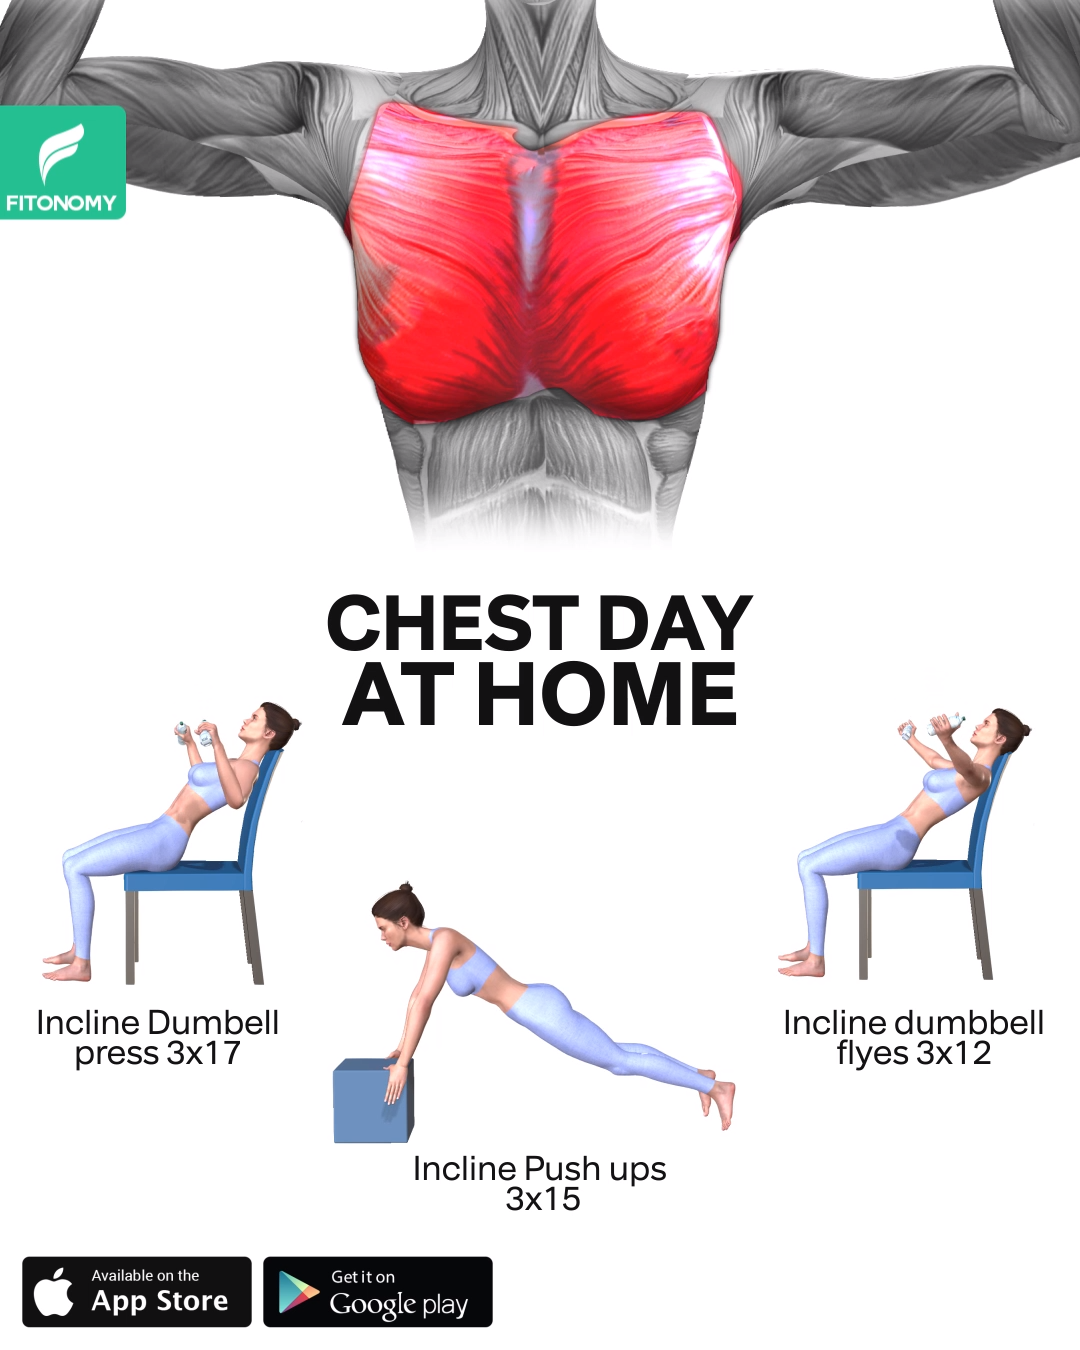 CHEST DAY AT HOME